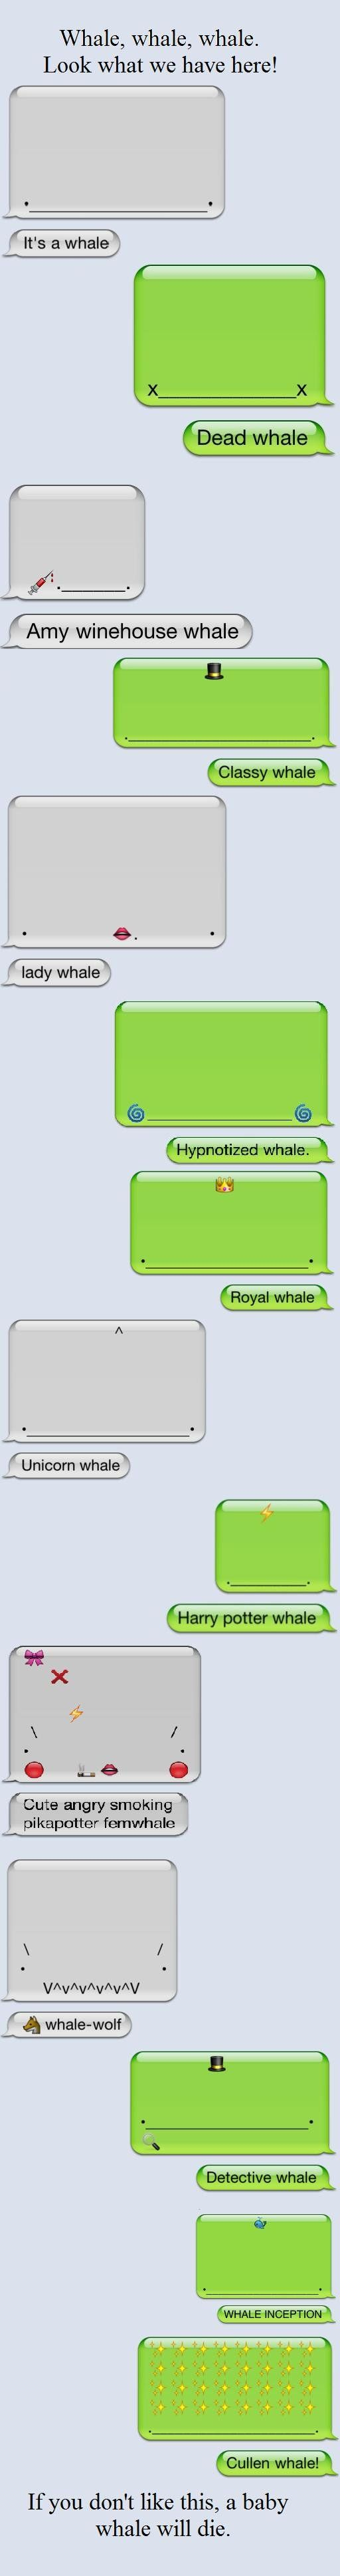 iphone whales for the win!